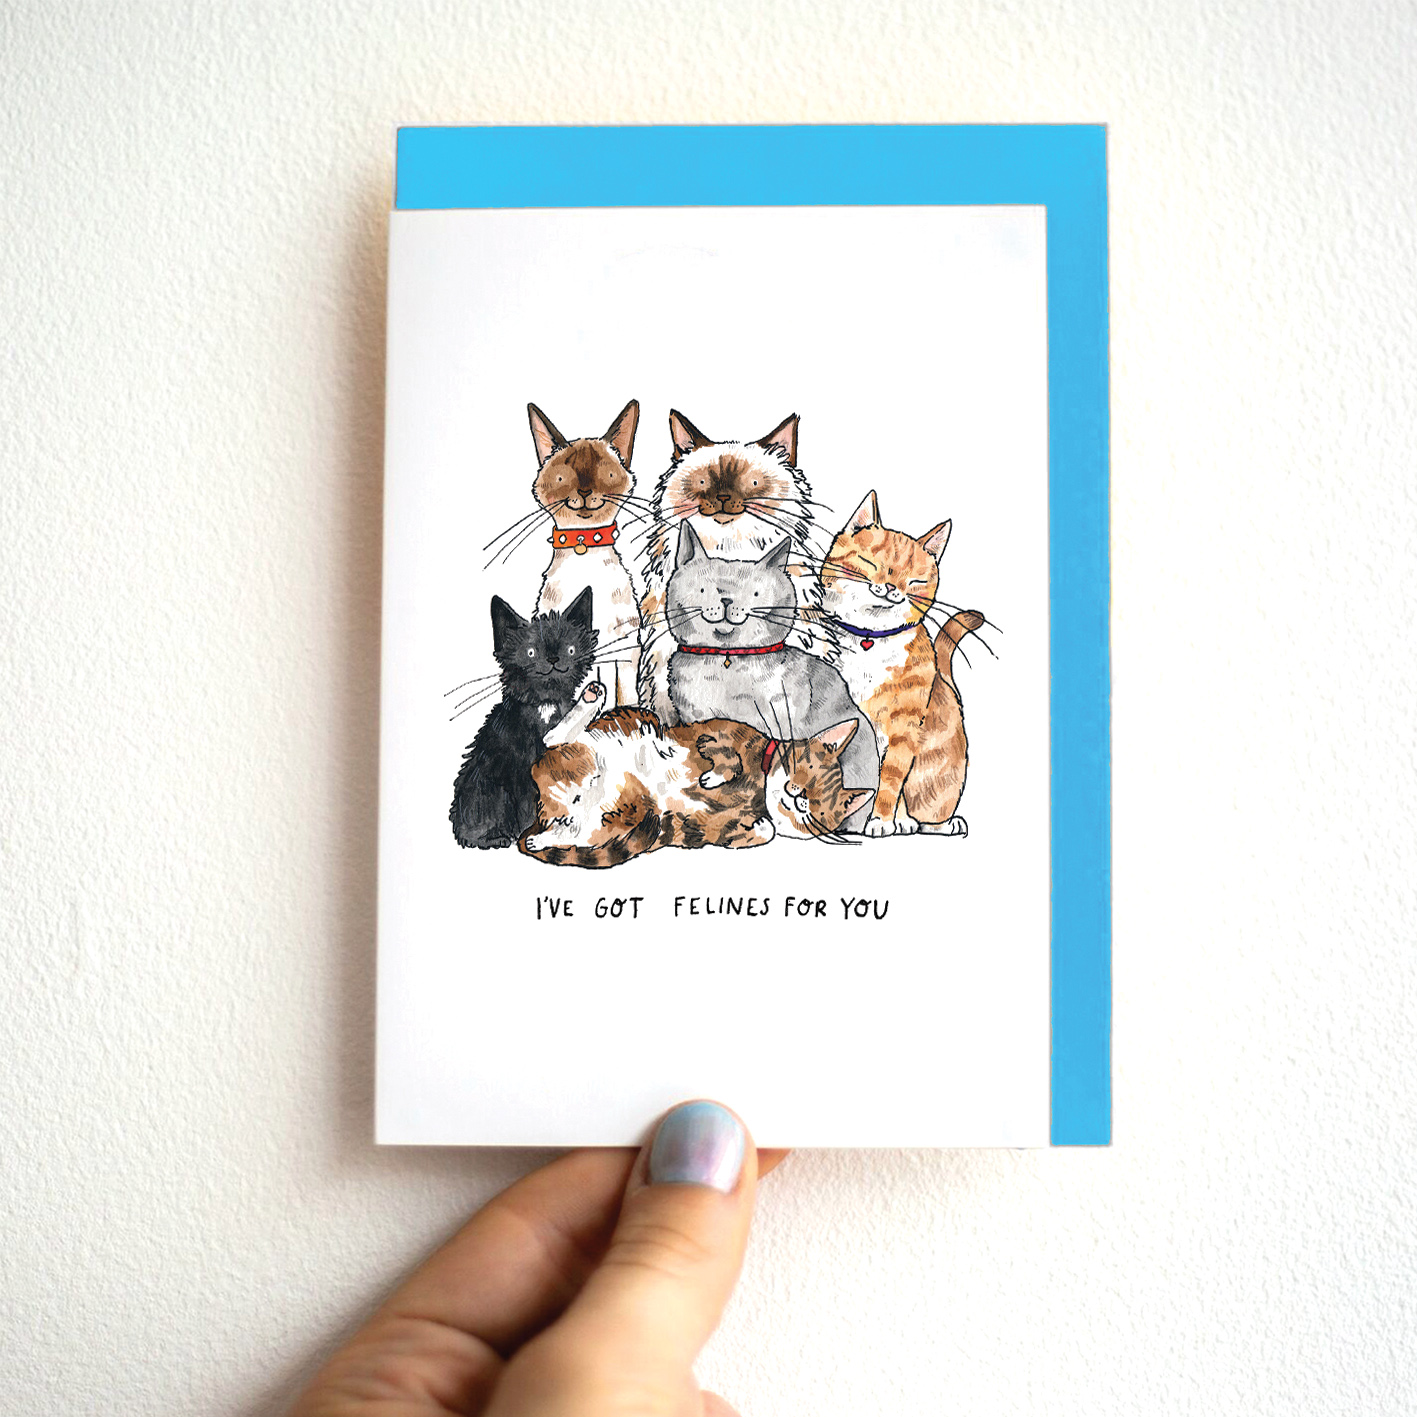 Felines-for-you_-Cat-greetings-card-for-anniversaries_SM72_THB-1